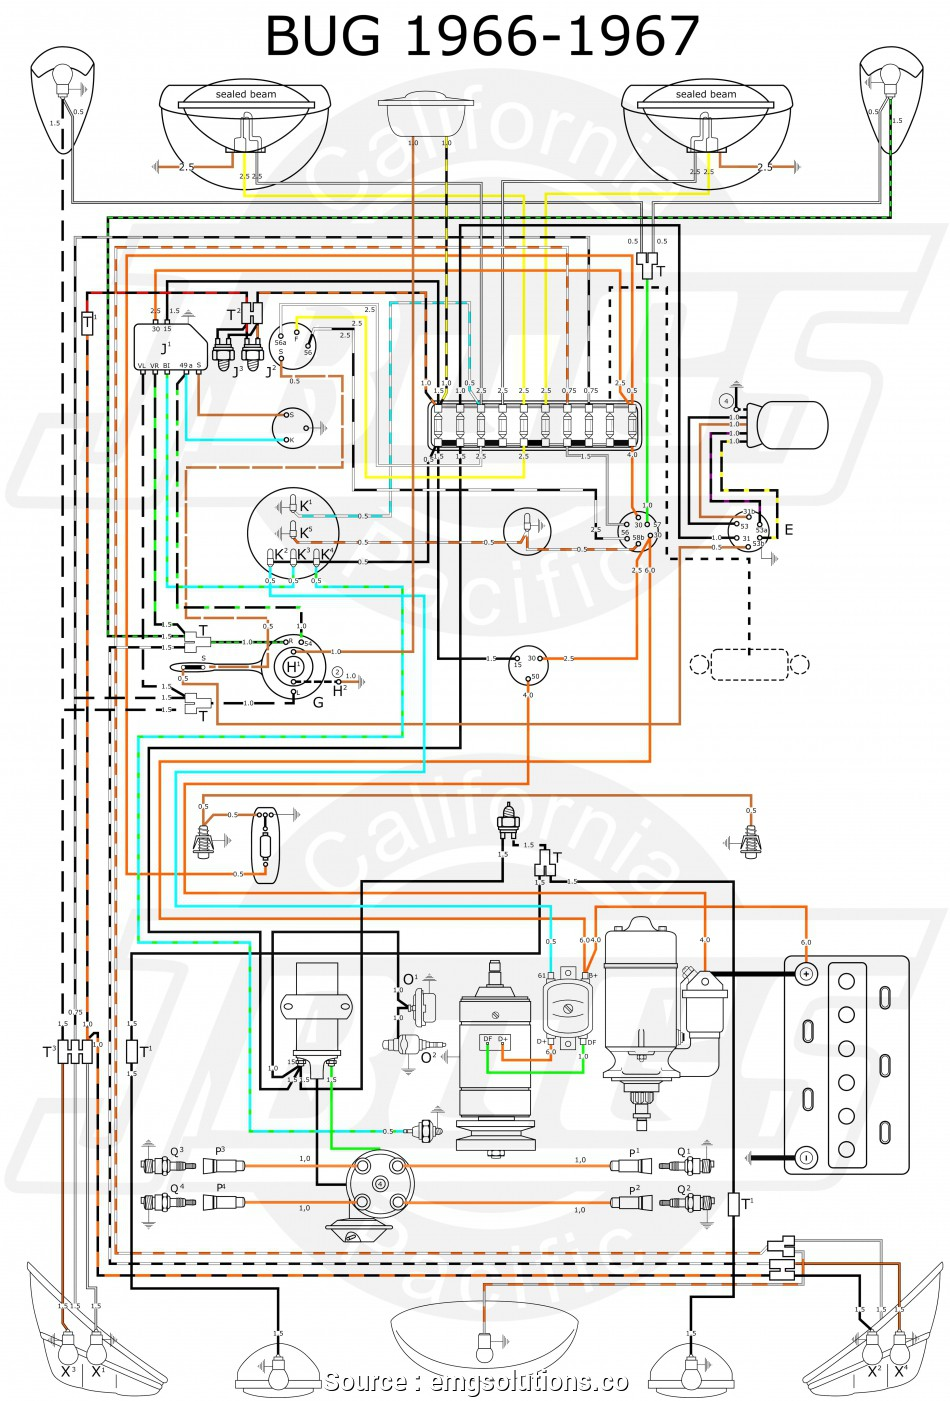 [SCHEMATICS_43NM]  AG_8877] Vw Ignition Switch Wiring Diagram Along With Vw Beetle Starter  Wiring Wiring Diagram | Vw Beetle Starter Wiring Diagram |  | Cran Venet Mohammedshrine Librar Wiring 101